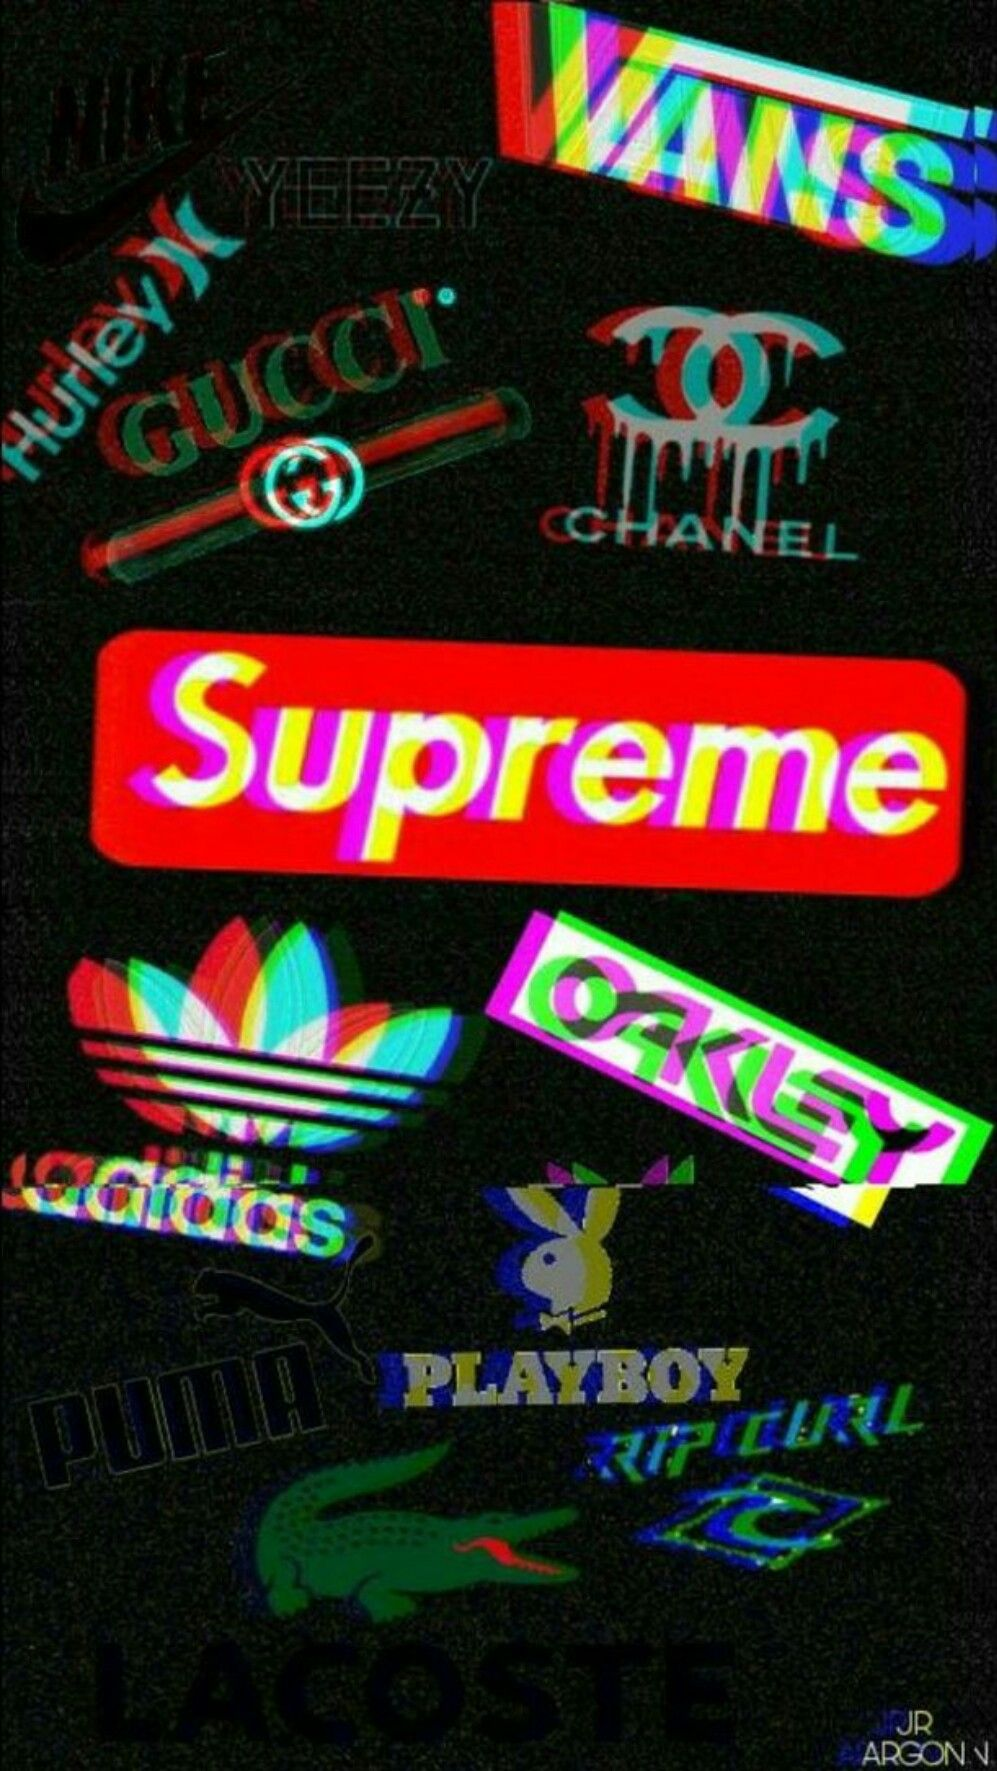 #Supreme | Wallpapers in 2019 | Iphone wallpaper, Wallpaper, Supreme wallpaper